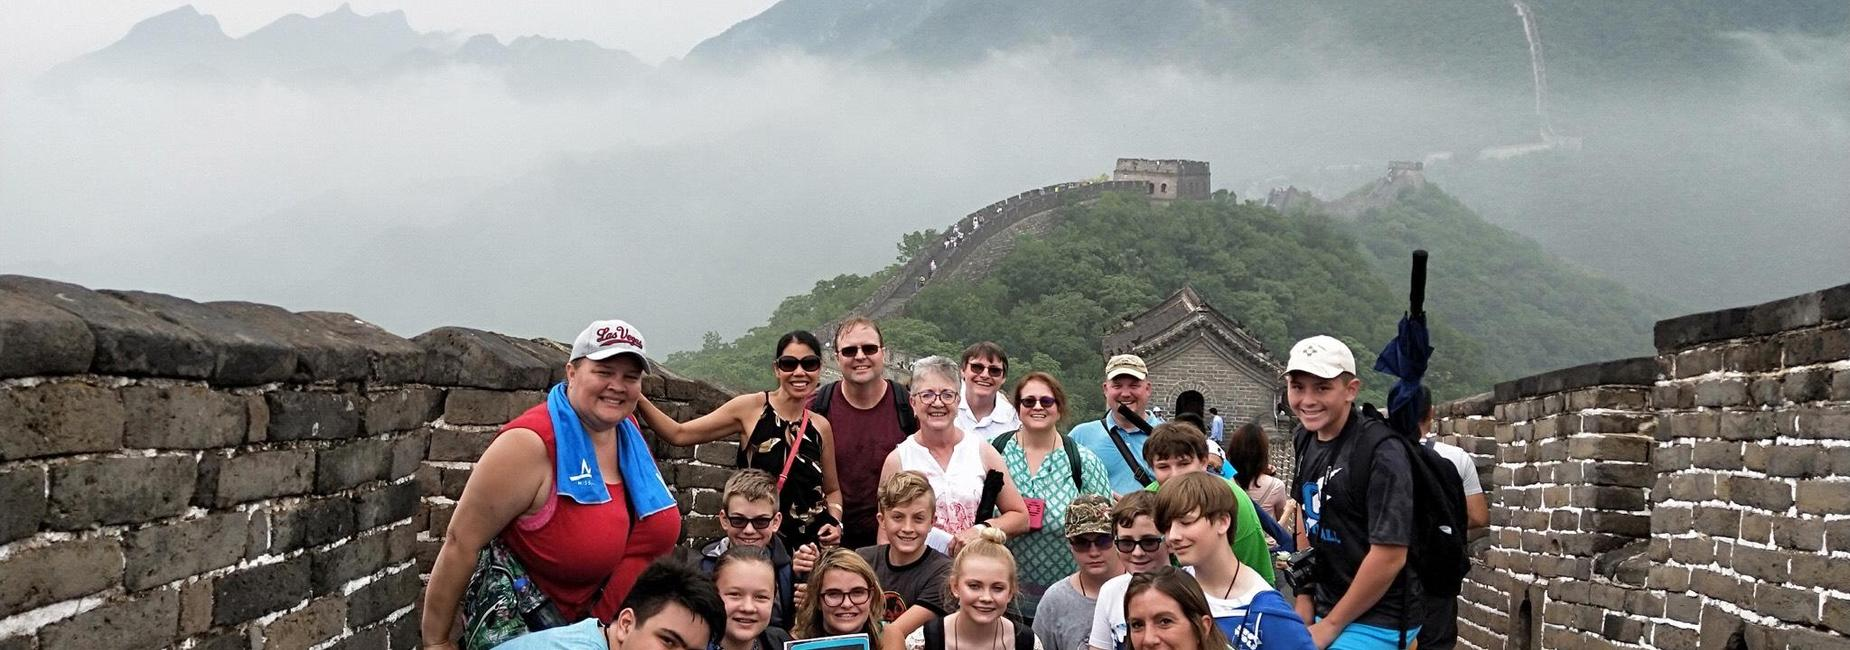 Families on The Great Wall of China